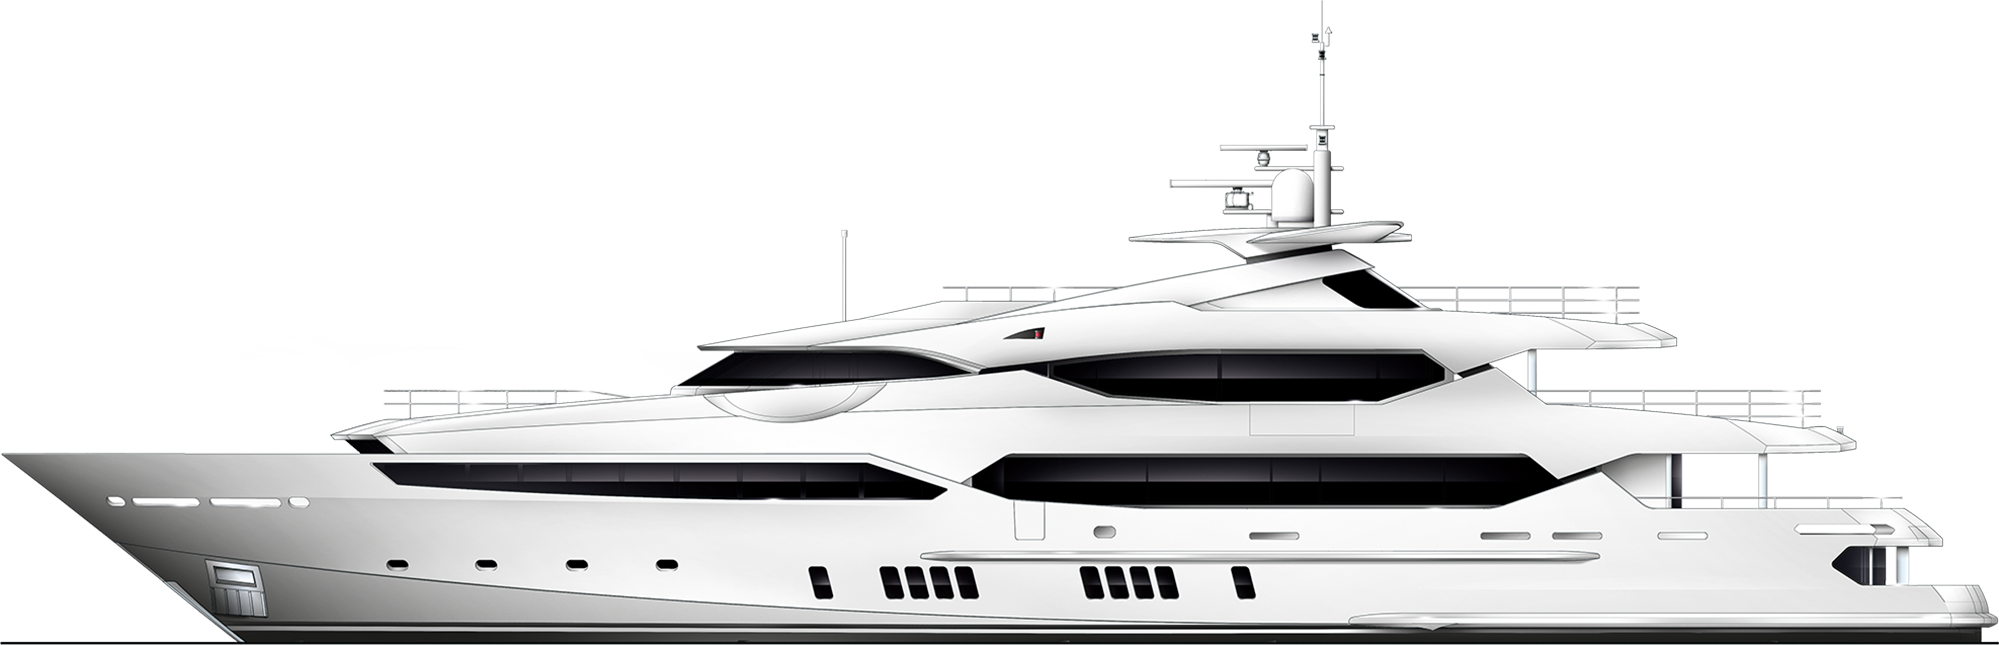 155 Yacht - Yacht, Transparent background PNG HD thumbnail